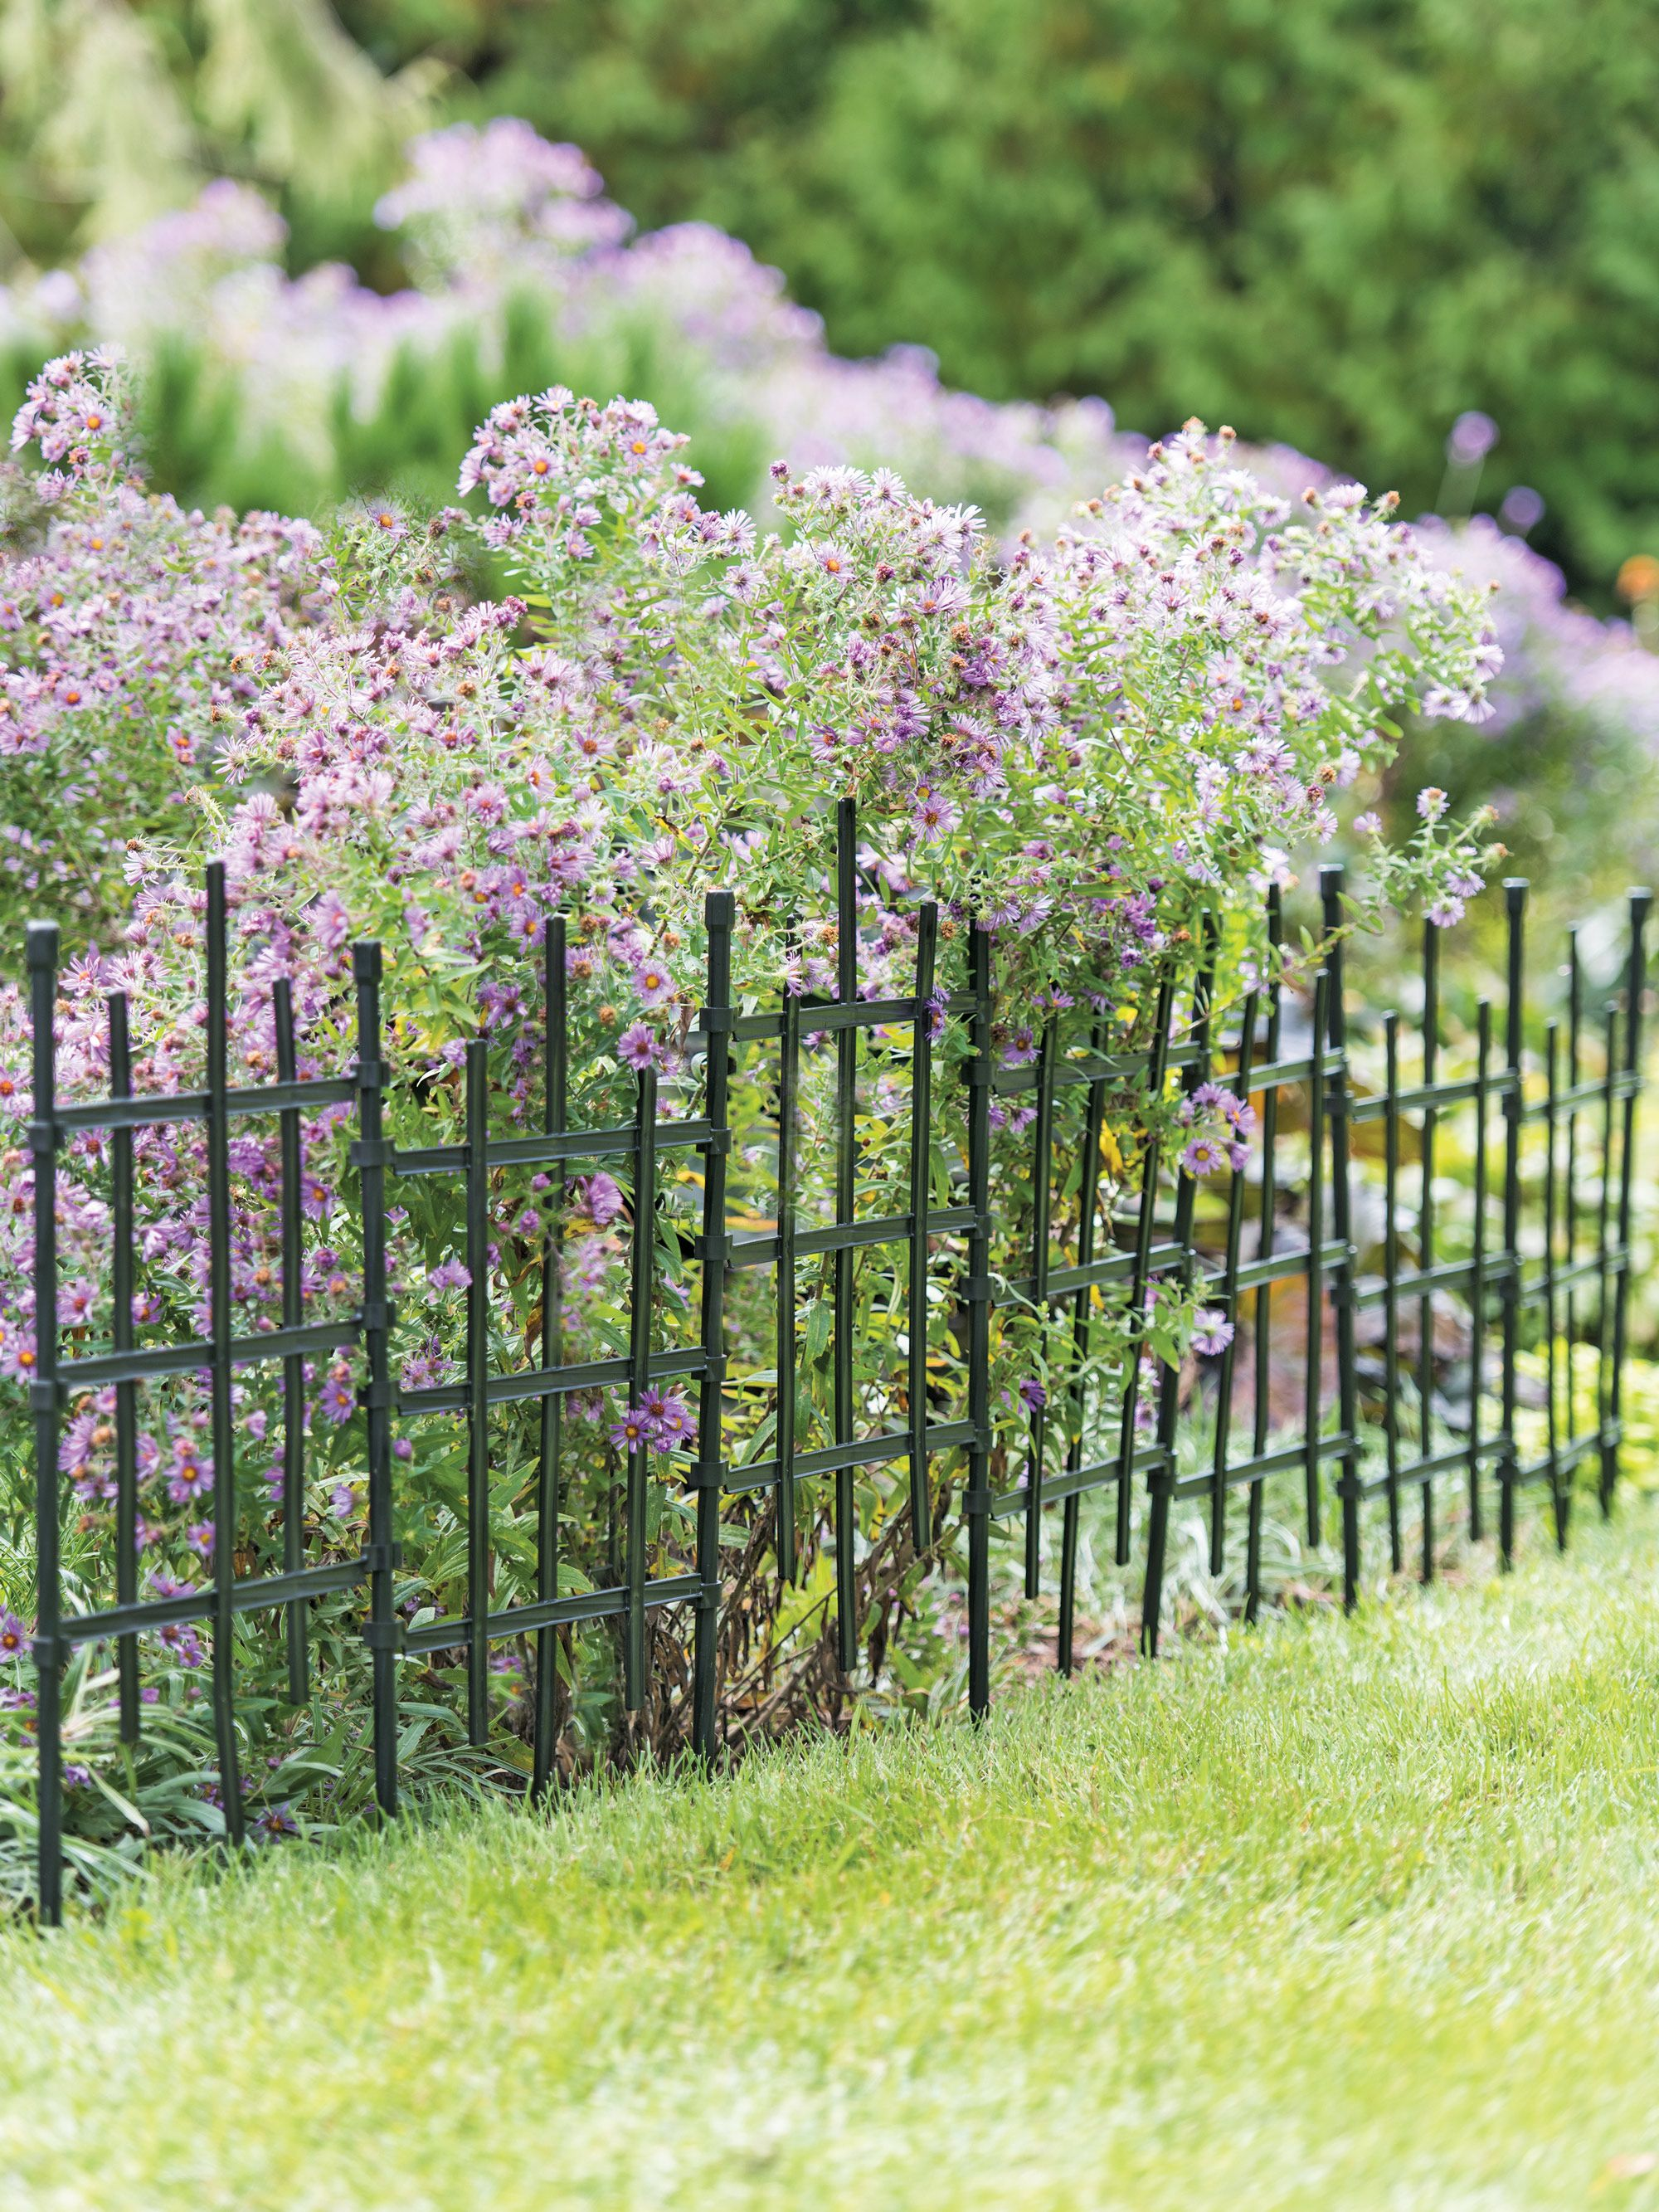 Garden Border Fencing Decorative Edging With Flowers Set Of 3